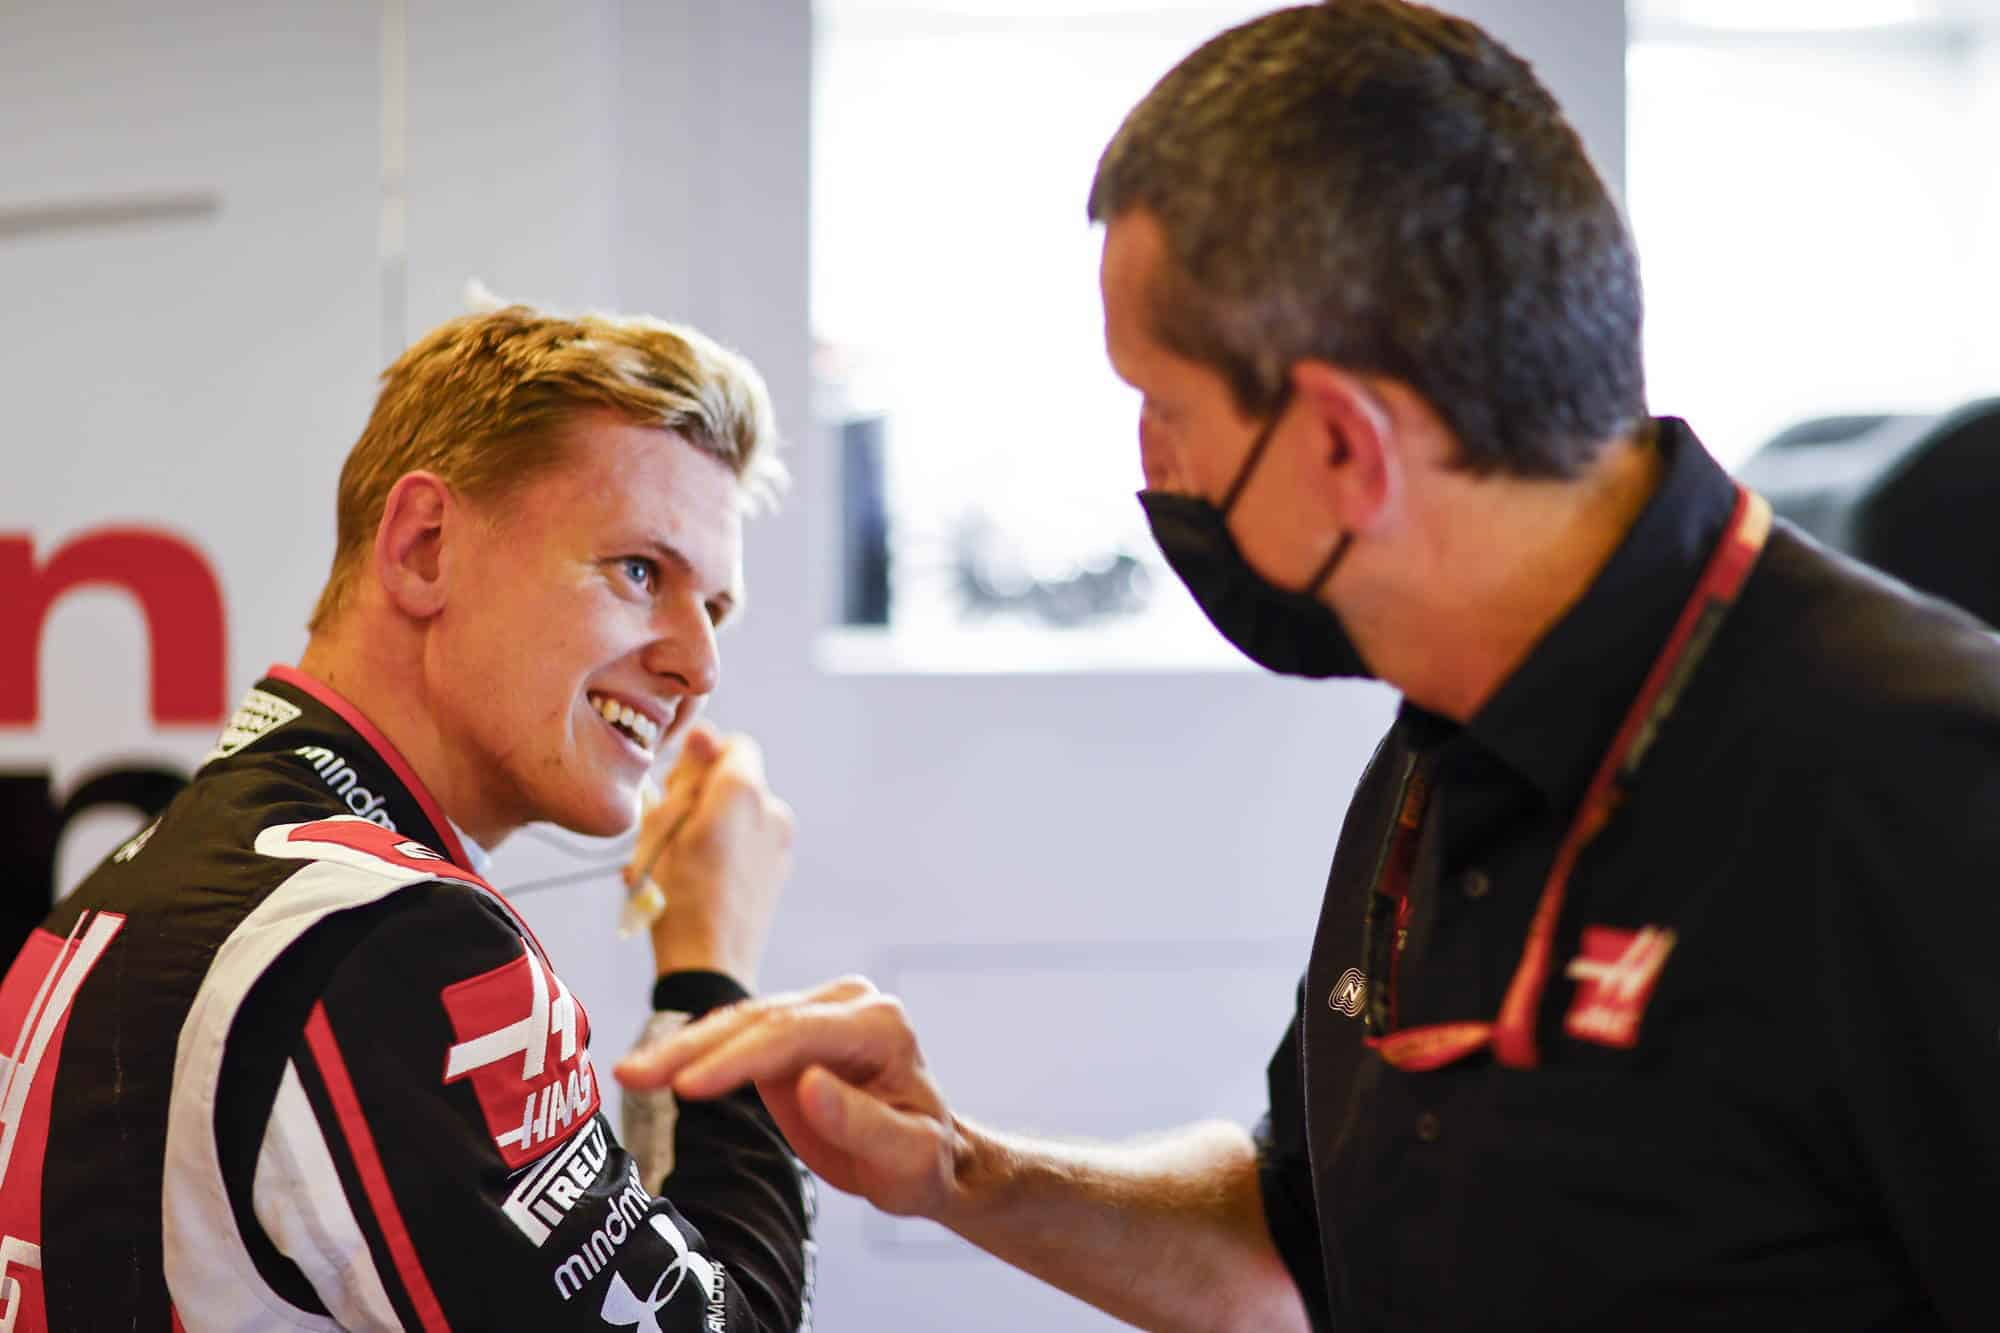 2020 Abu Dhabi GP Mick Schumacher Haas F1 team Friday in garaga Photo Haas F1 Team